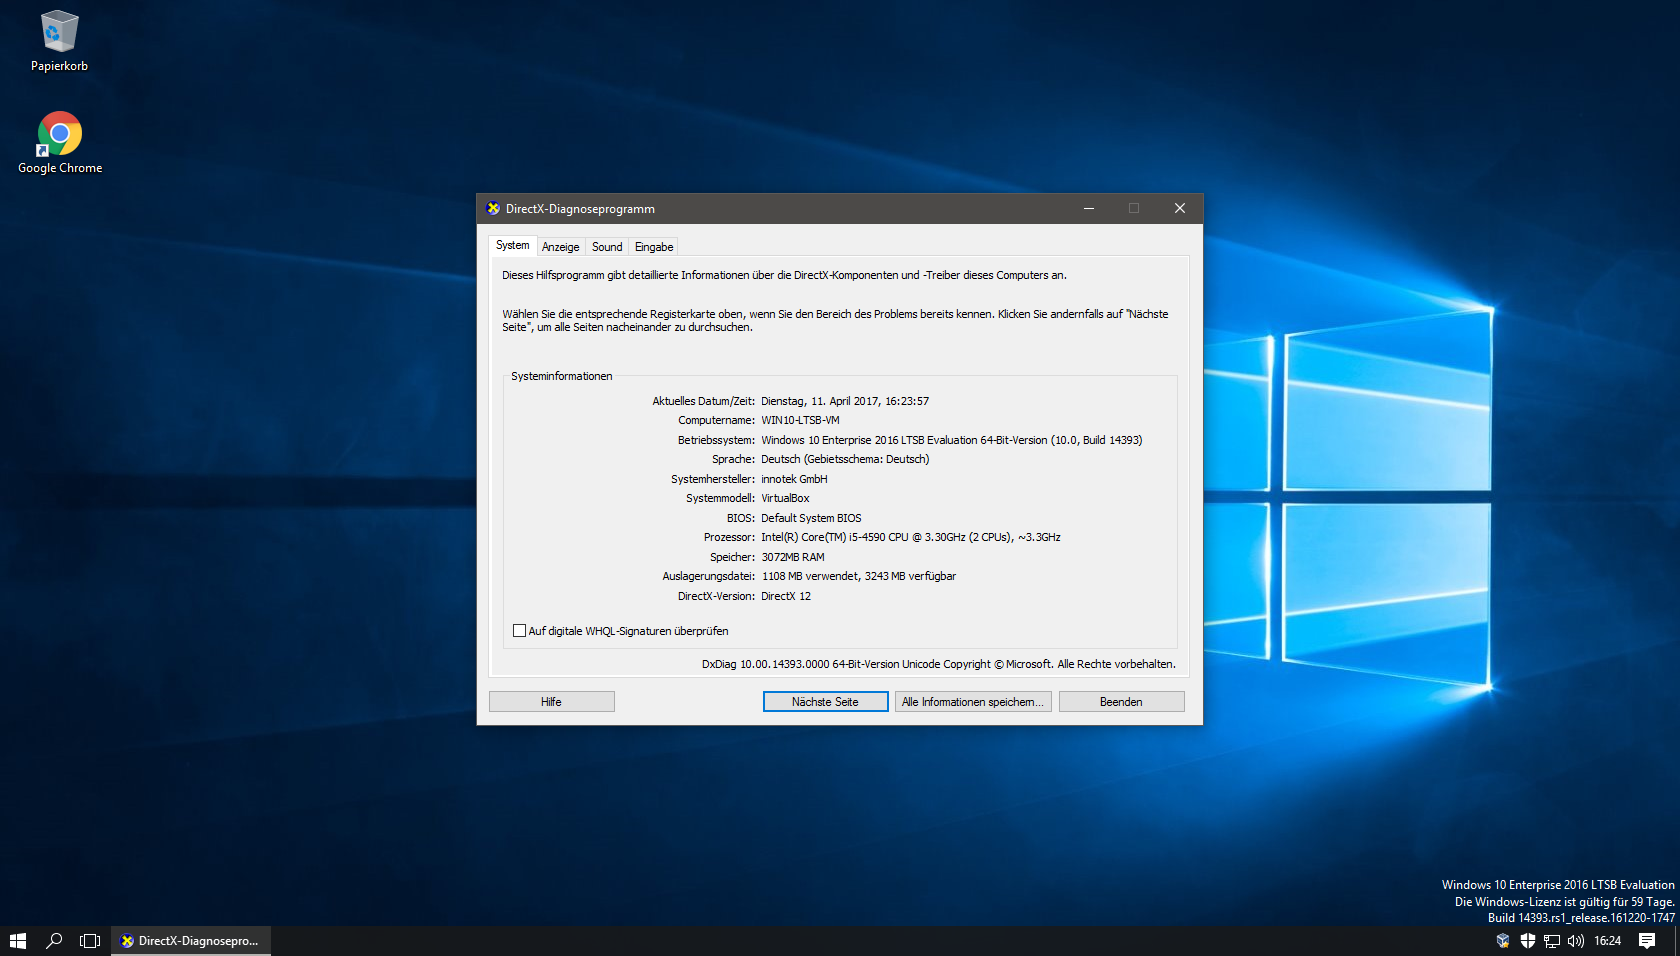 Windows 9 5 Install Guide - Page 4 - LTT Official - Linus Tech Tips